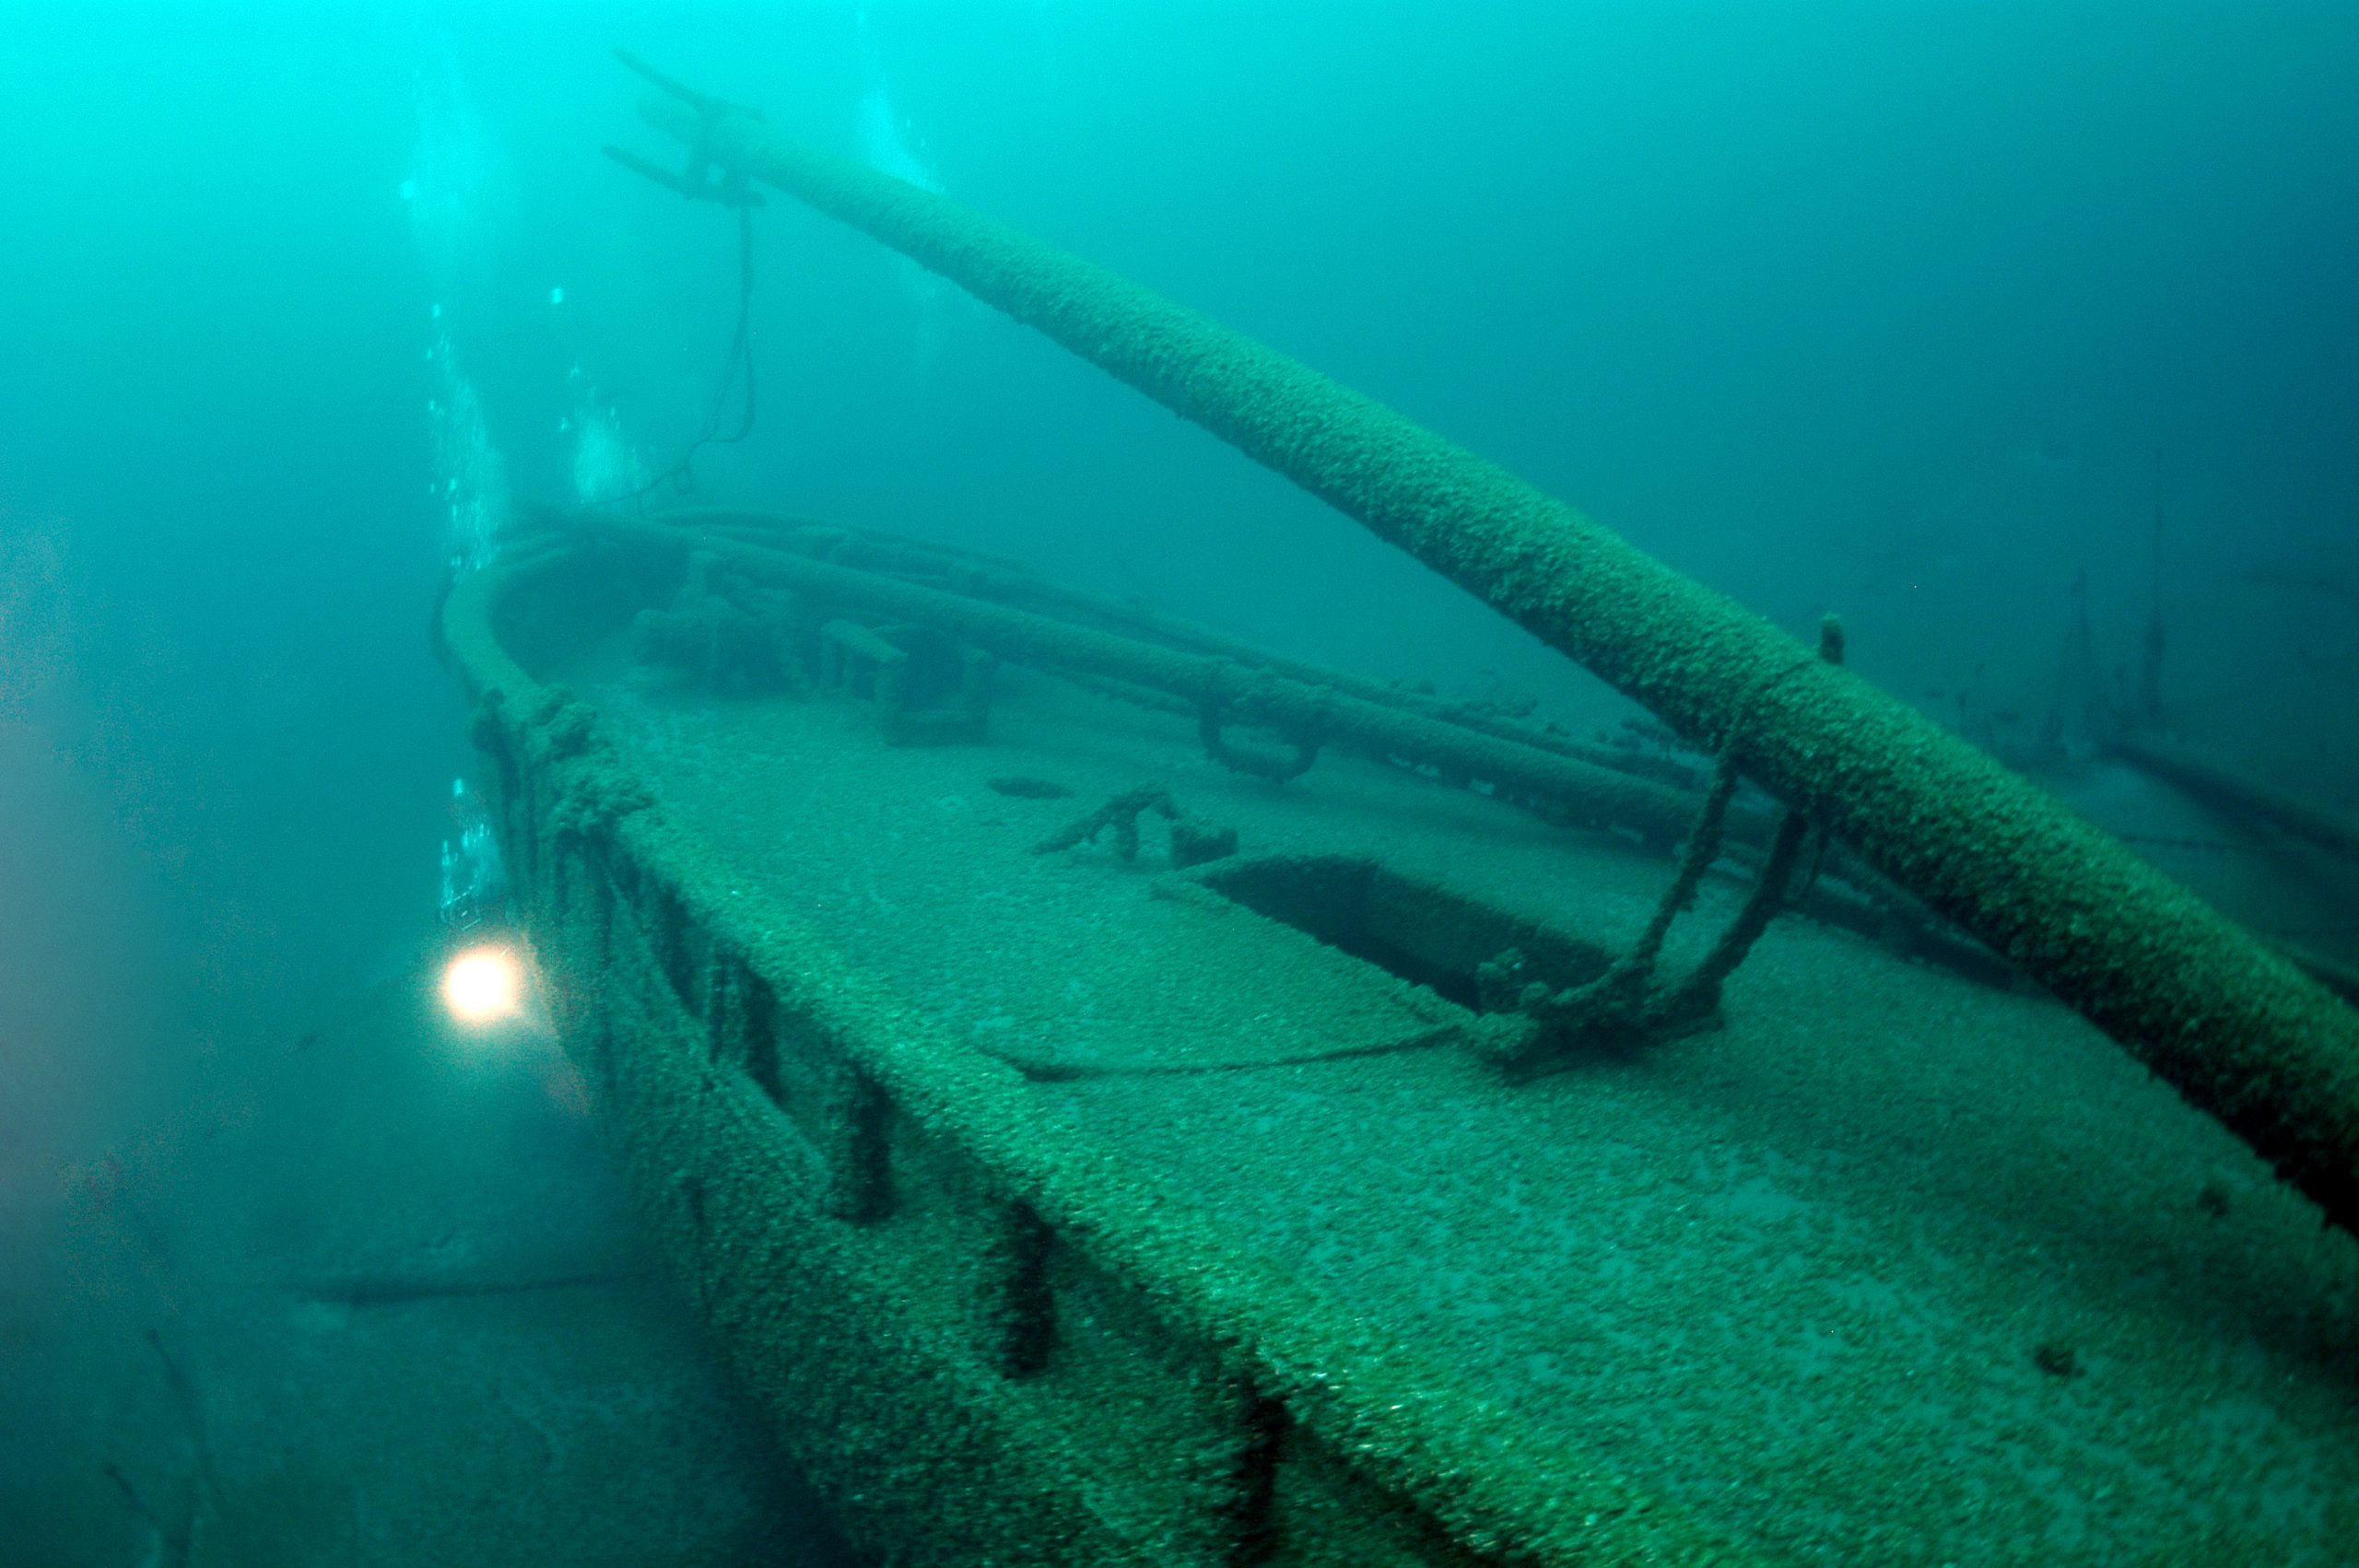 Photo of the schooner Gallinipper, Wisconsin's oldest shipwreck discovered to date.